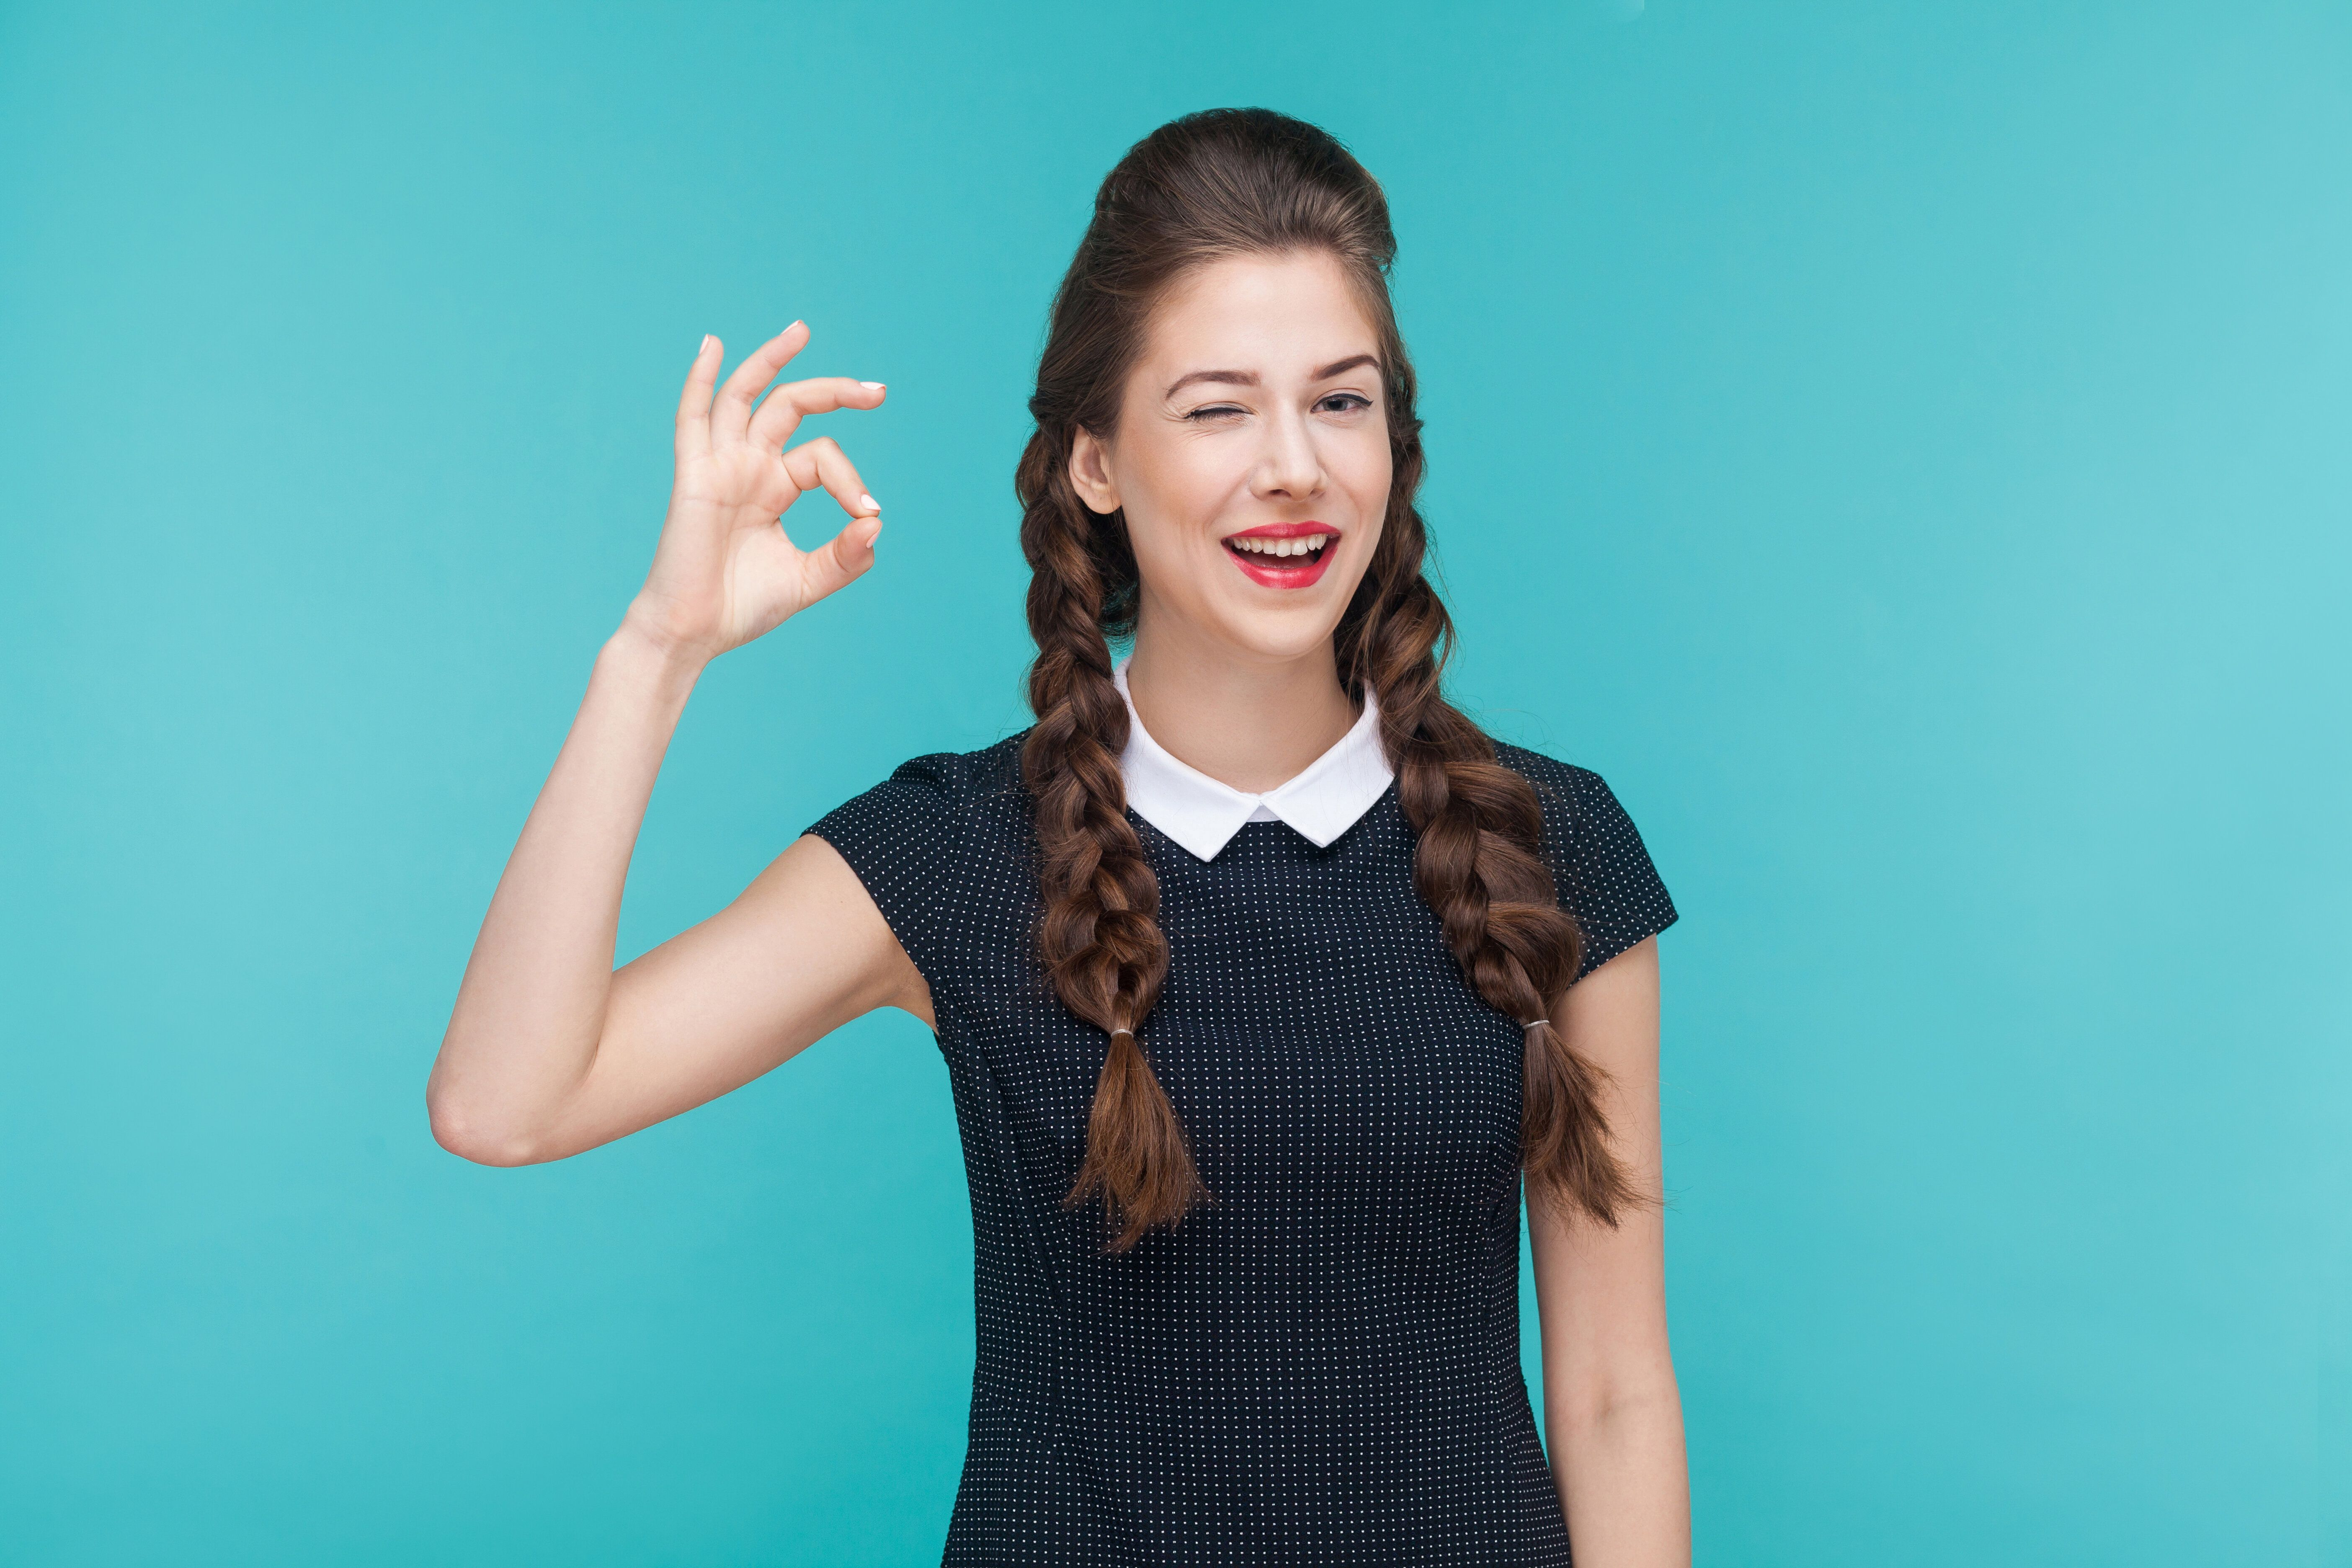 Gesture woman toothy smile and showing ok sign at camera. Indoor, studio shot on blue background